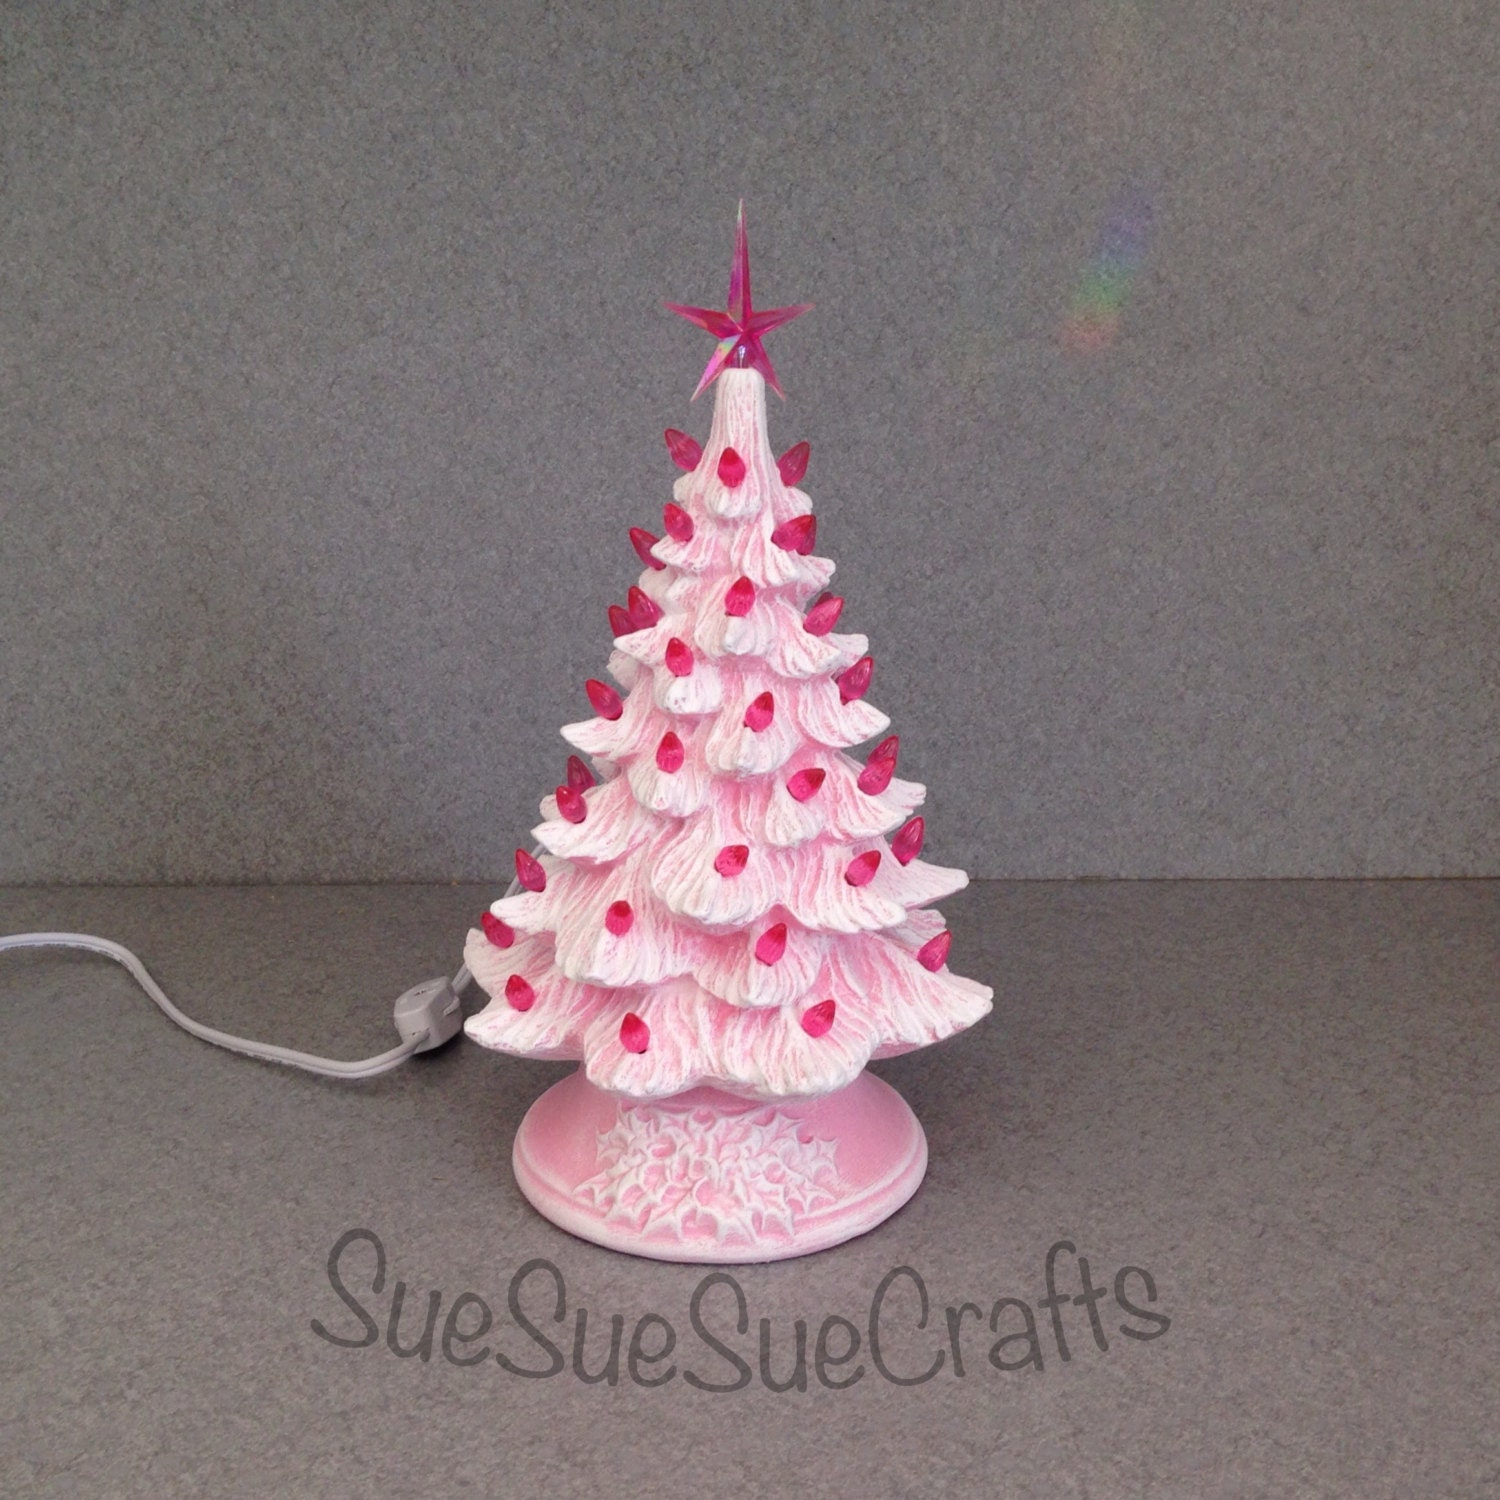 PINK Stained Ceramic Christmas Tree 11 Inches Pink Lights